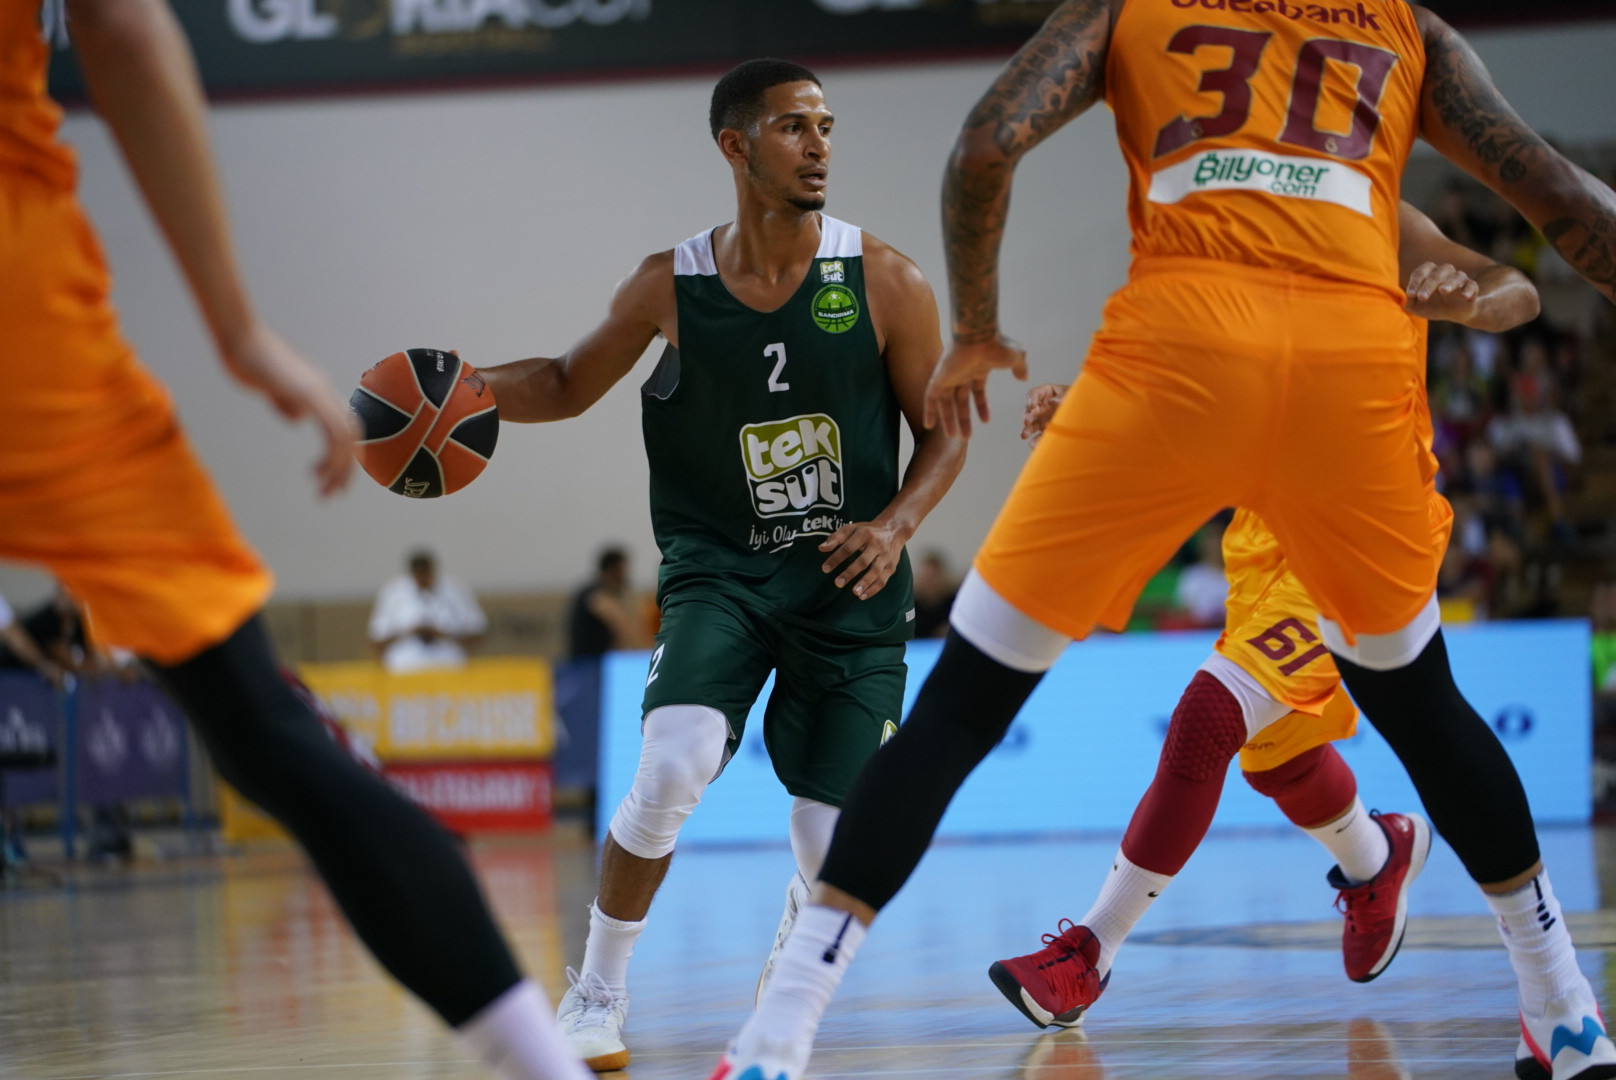 James Elliott Smith scored 12 points for TEKSÜT Bandırma on finals day in Antalya ©GSA